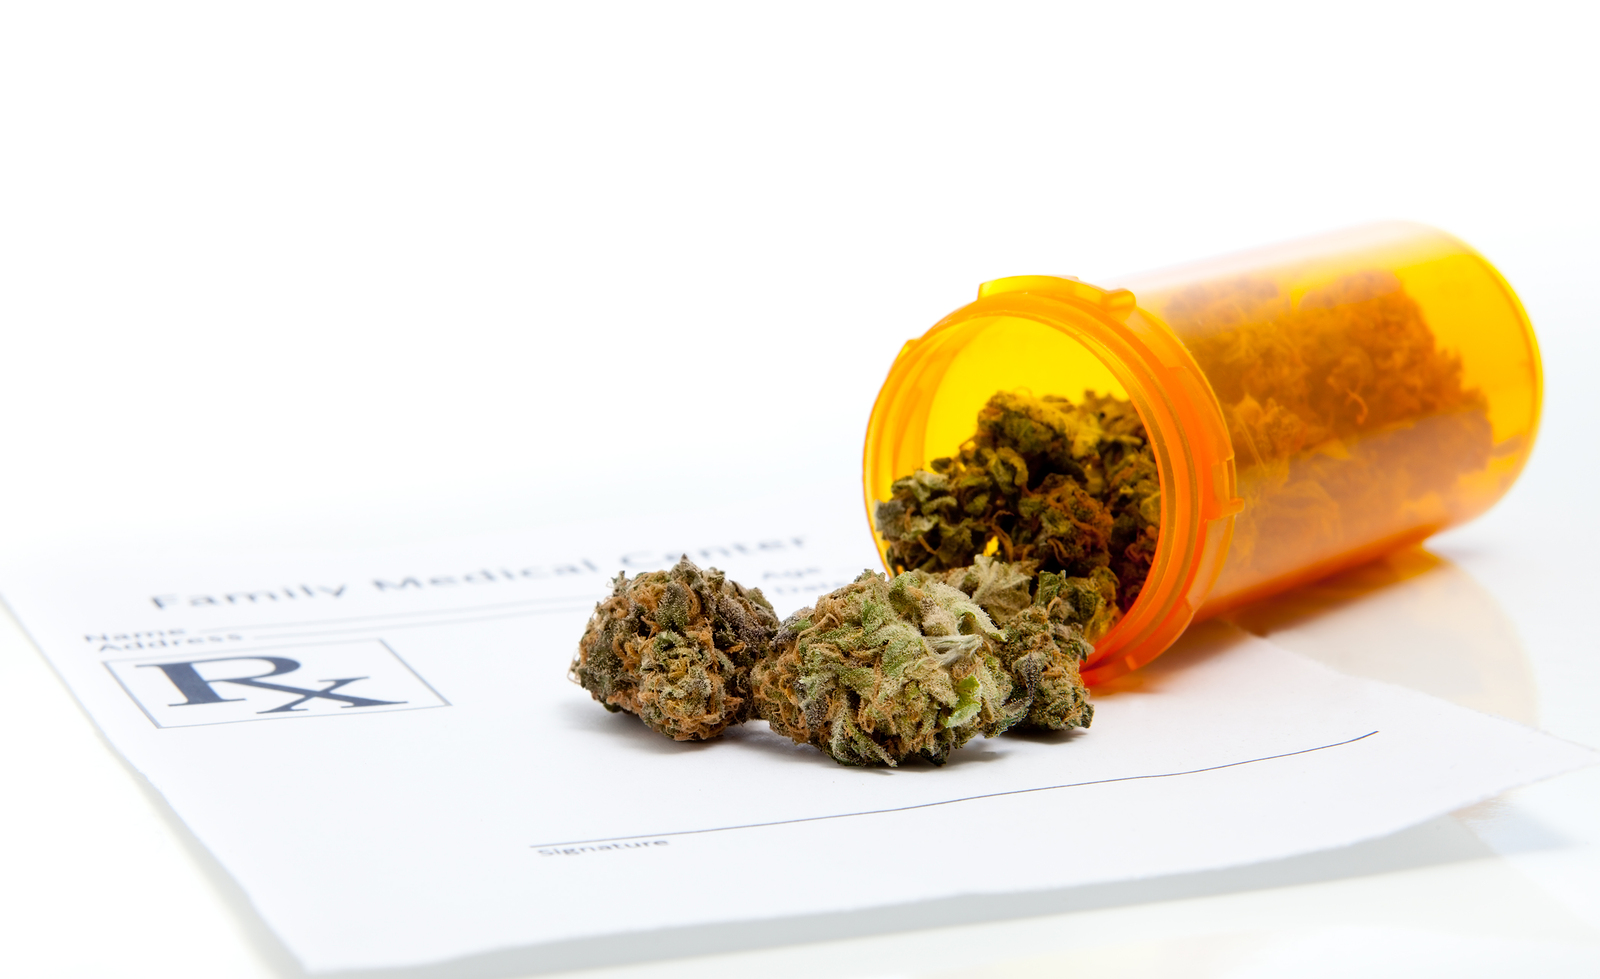 Medical Marijuana RX Prescription - How to Talk to Your Doctor About Medical Marijuana